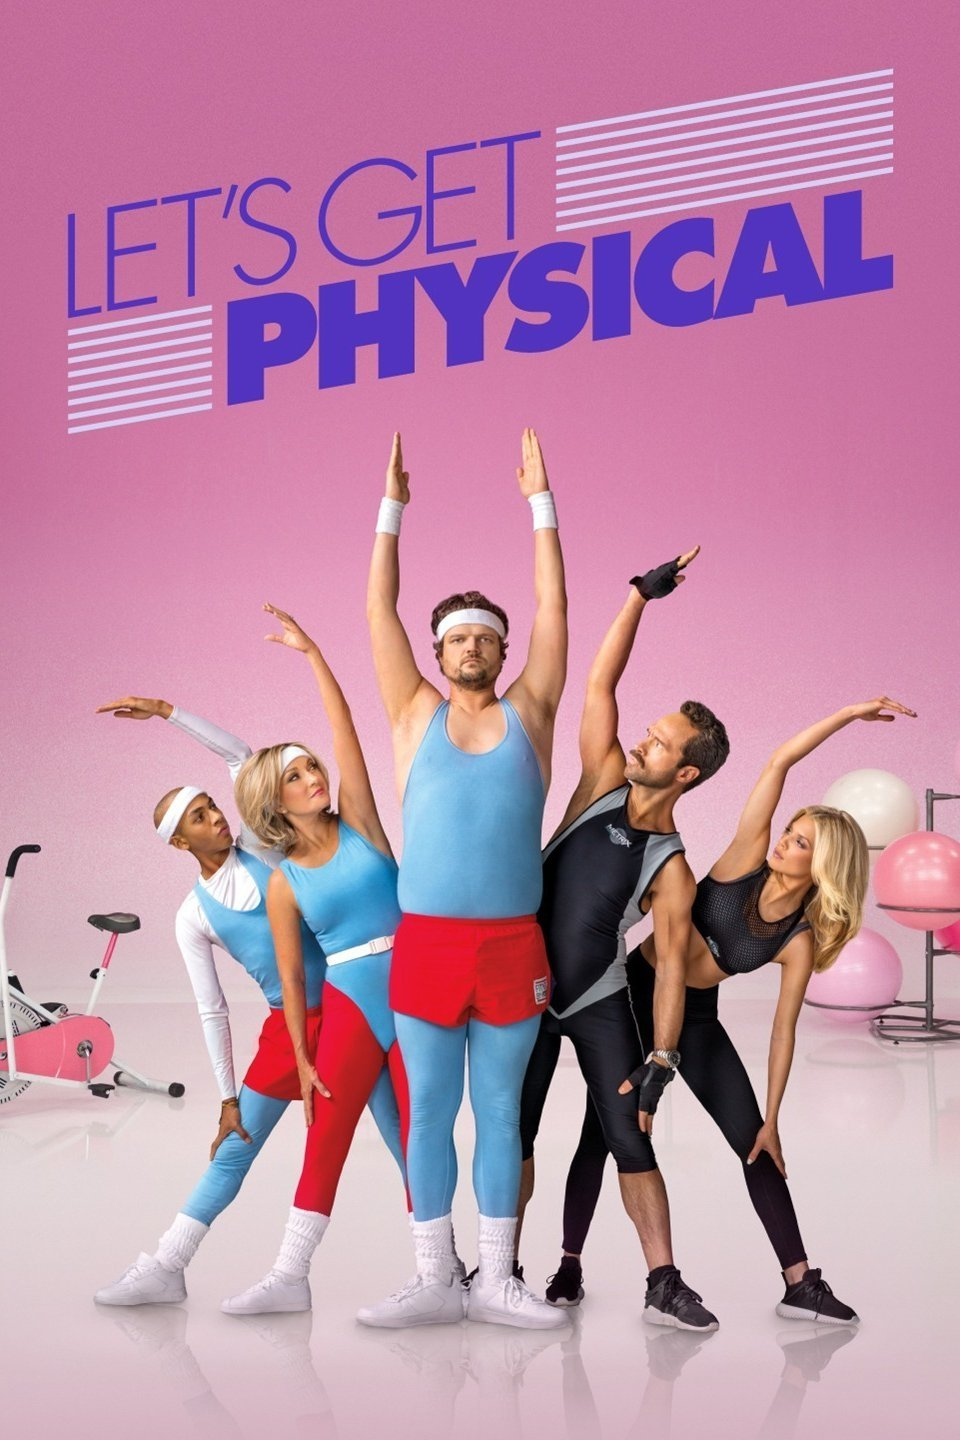 Let's get physical   S01  E01-02